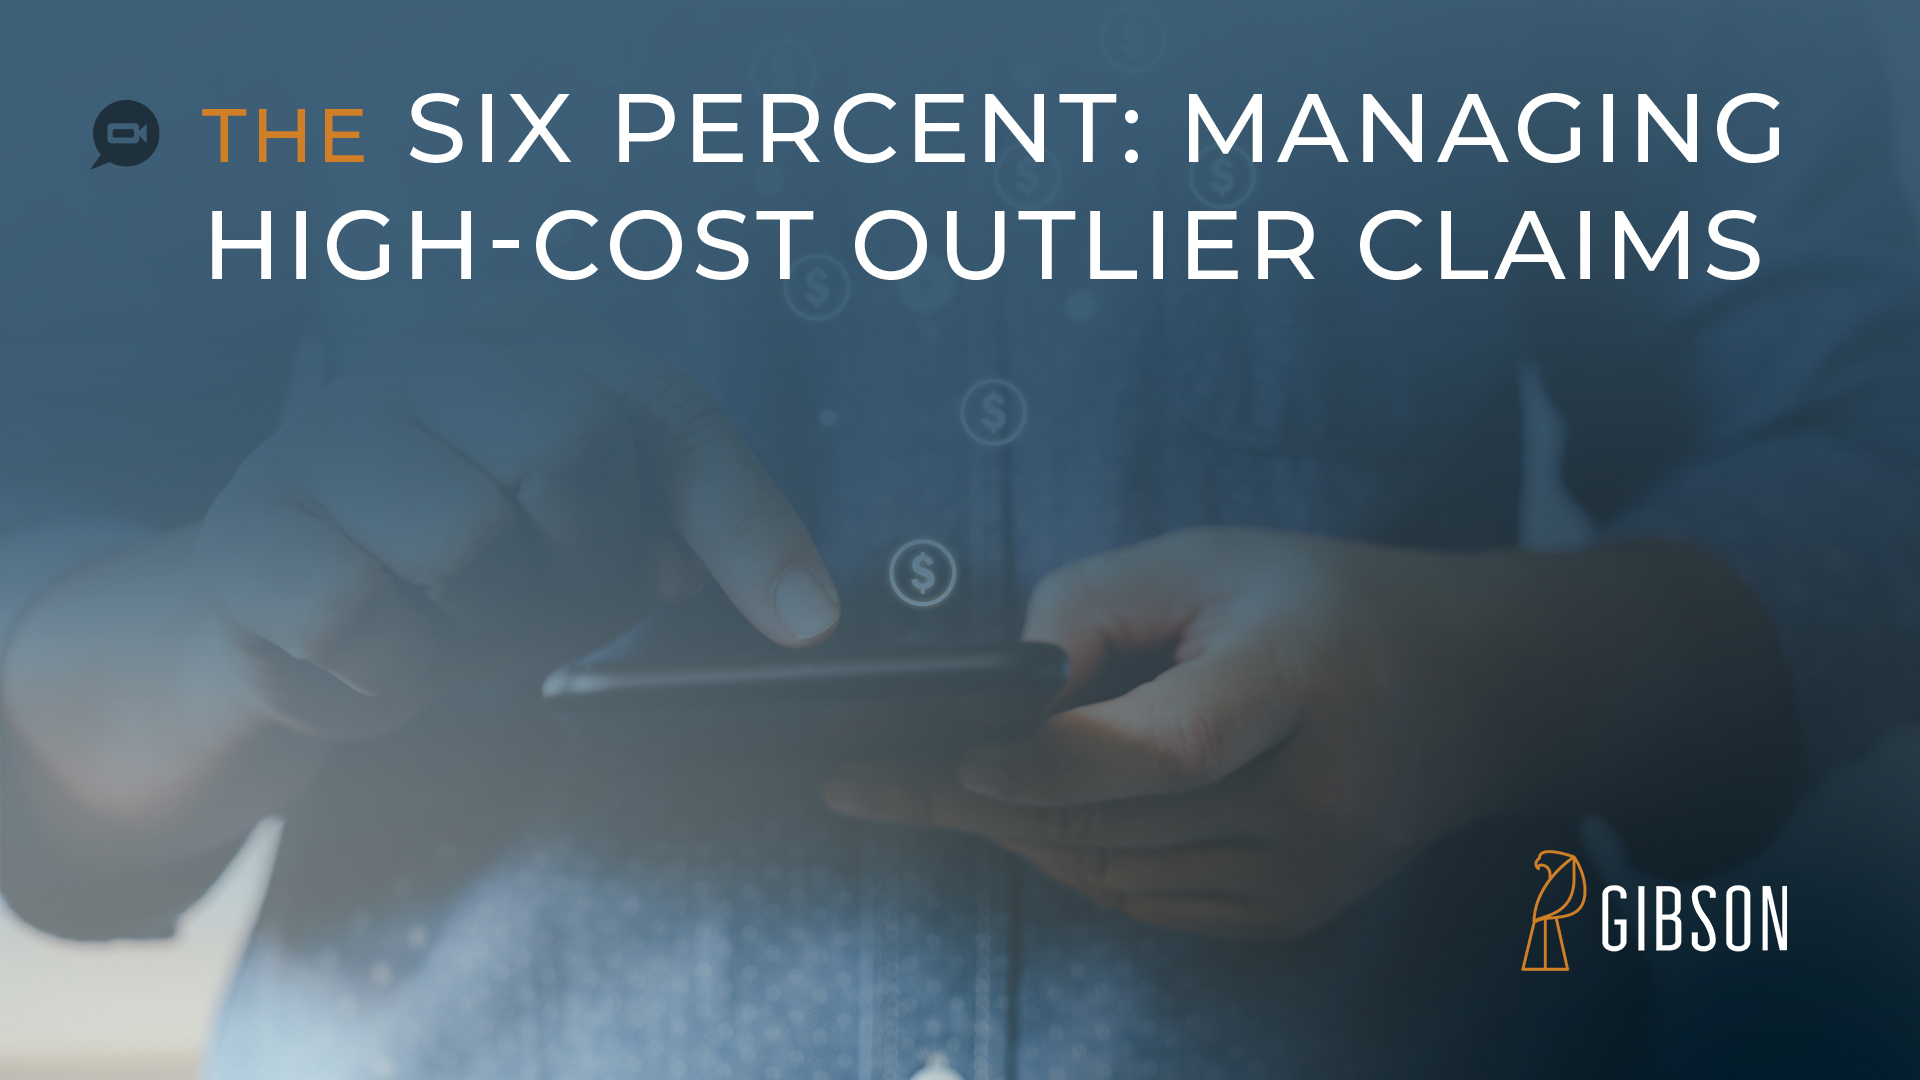 The Six Percent Managing High-Cost Outlier Claims